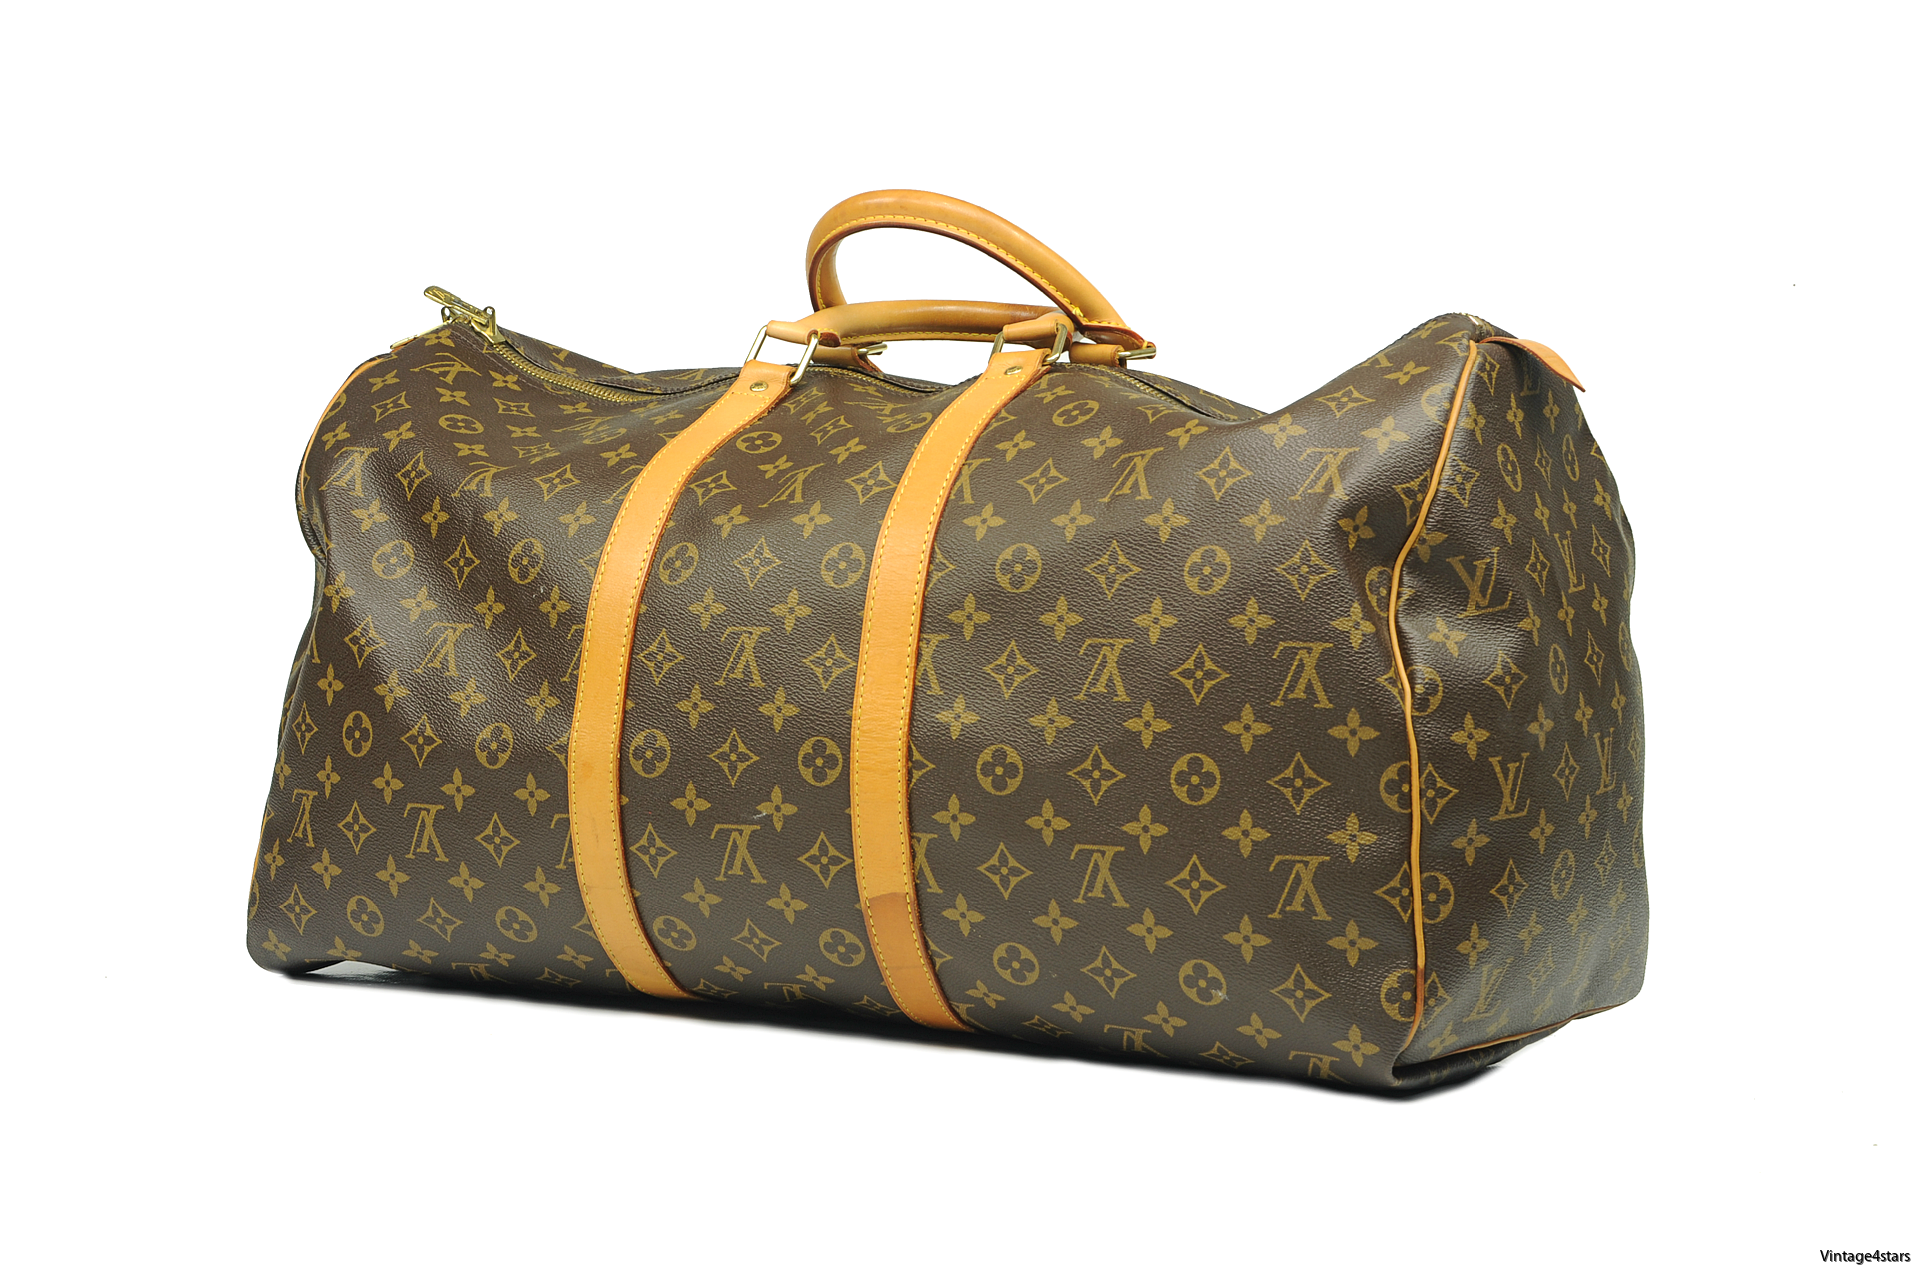 Louis Vuitton Keepall 55 1a